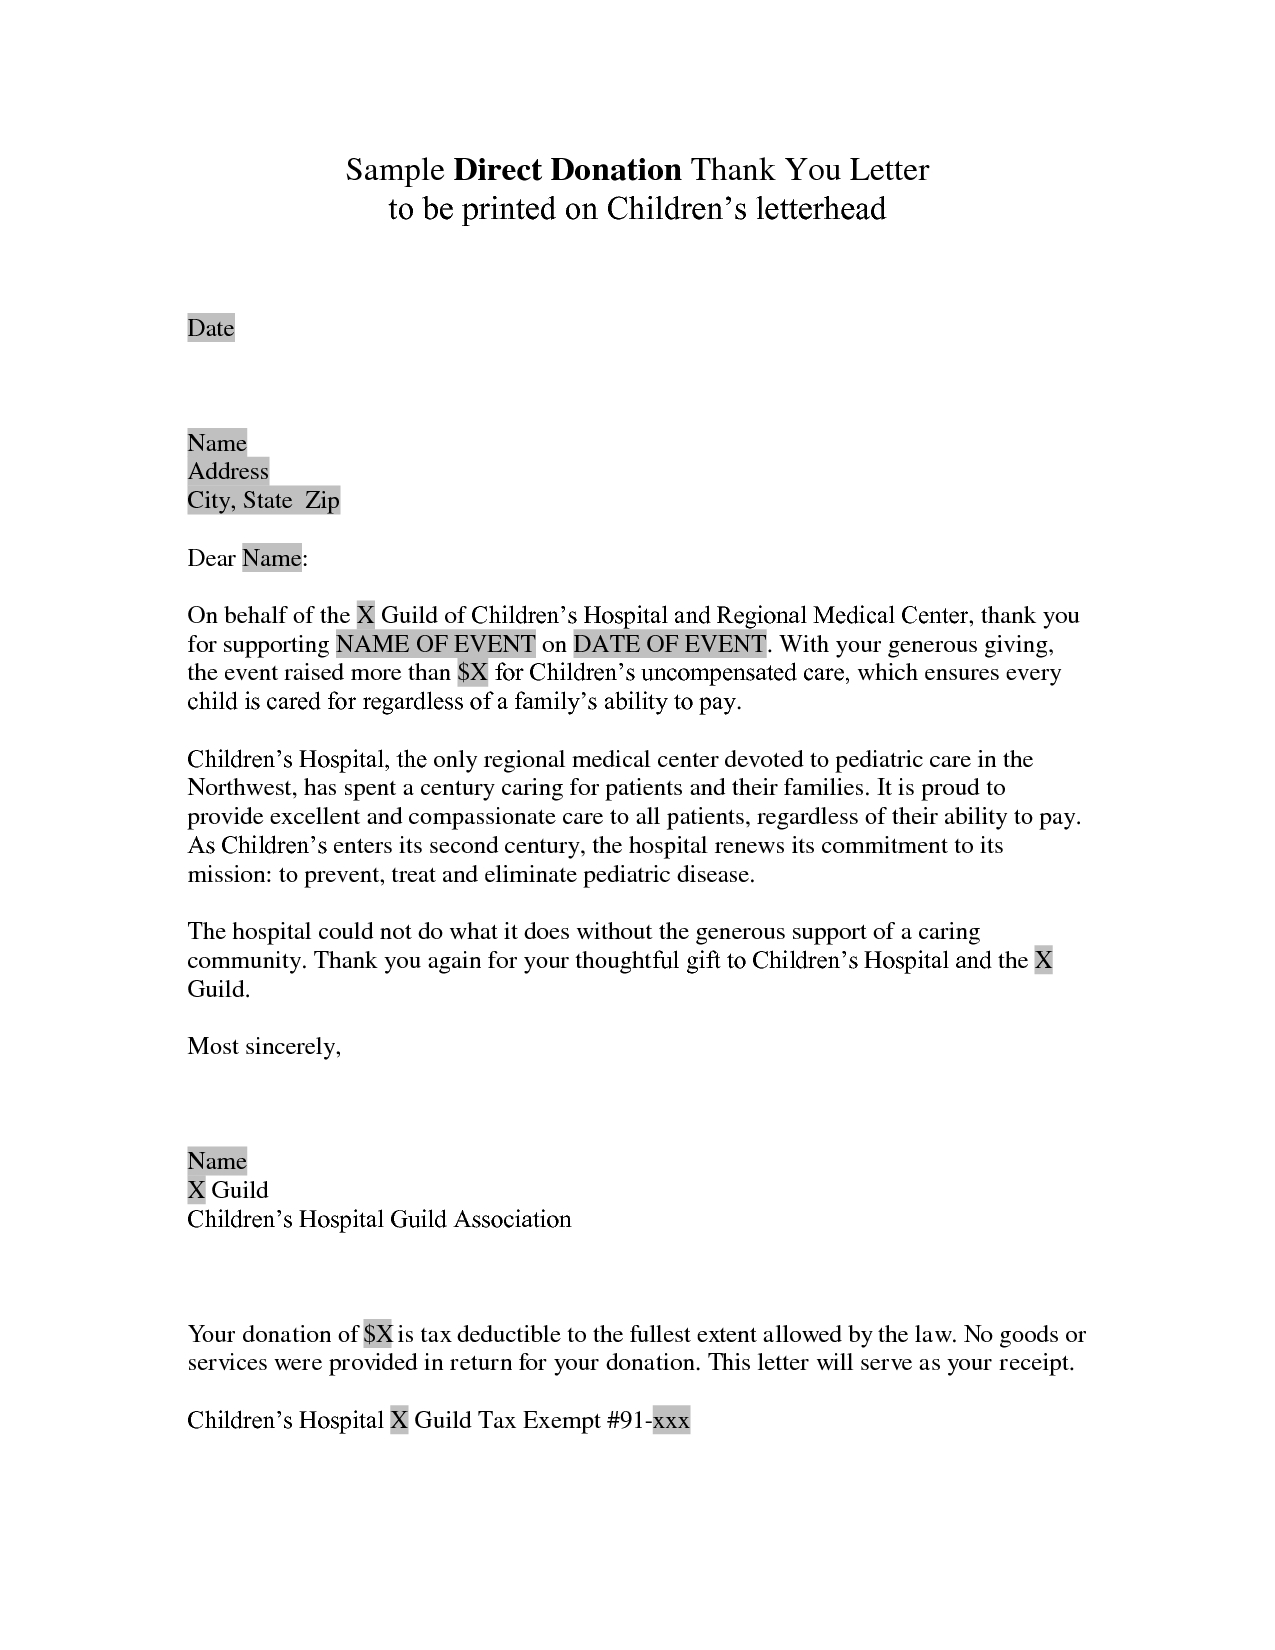 Donation Letter Template For Fundraiser Download